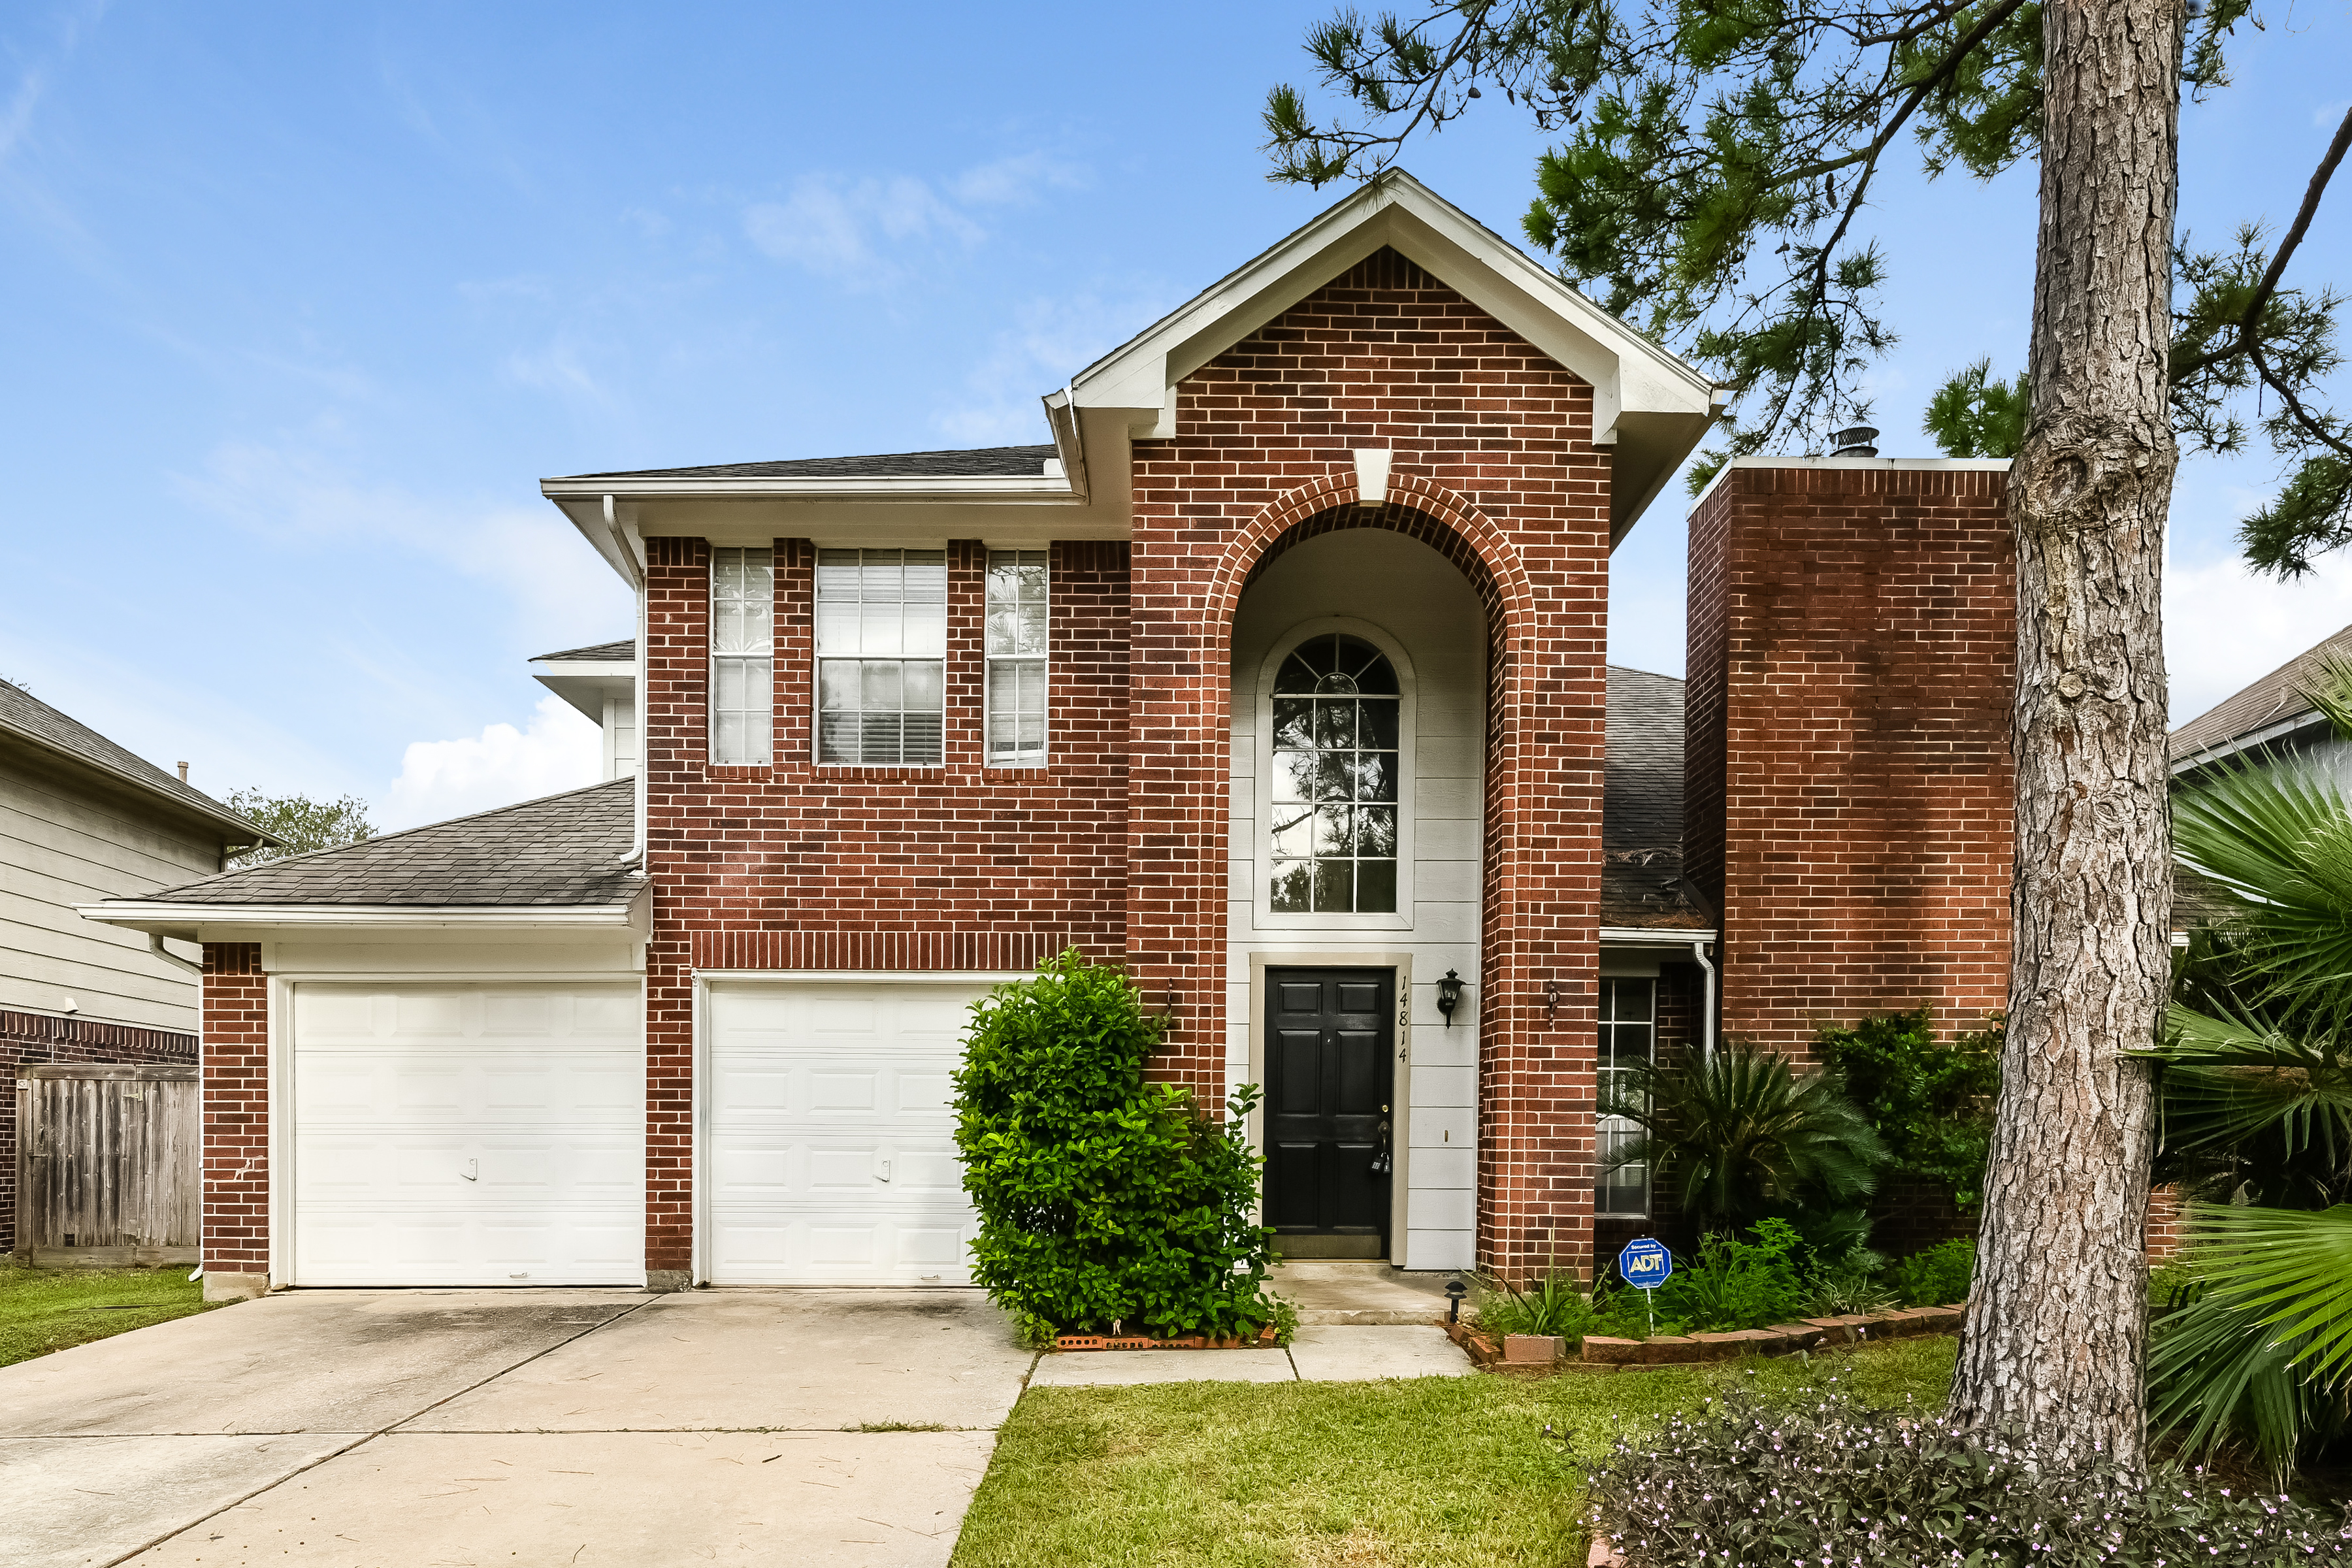 Photo of 14814 Cypress Green Drive, Cypress, TX, 77429